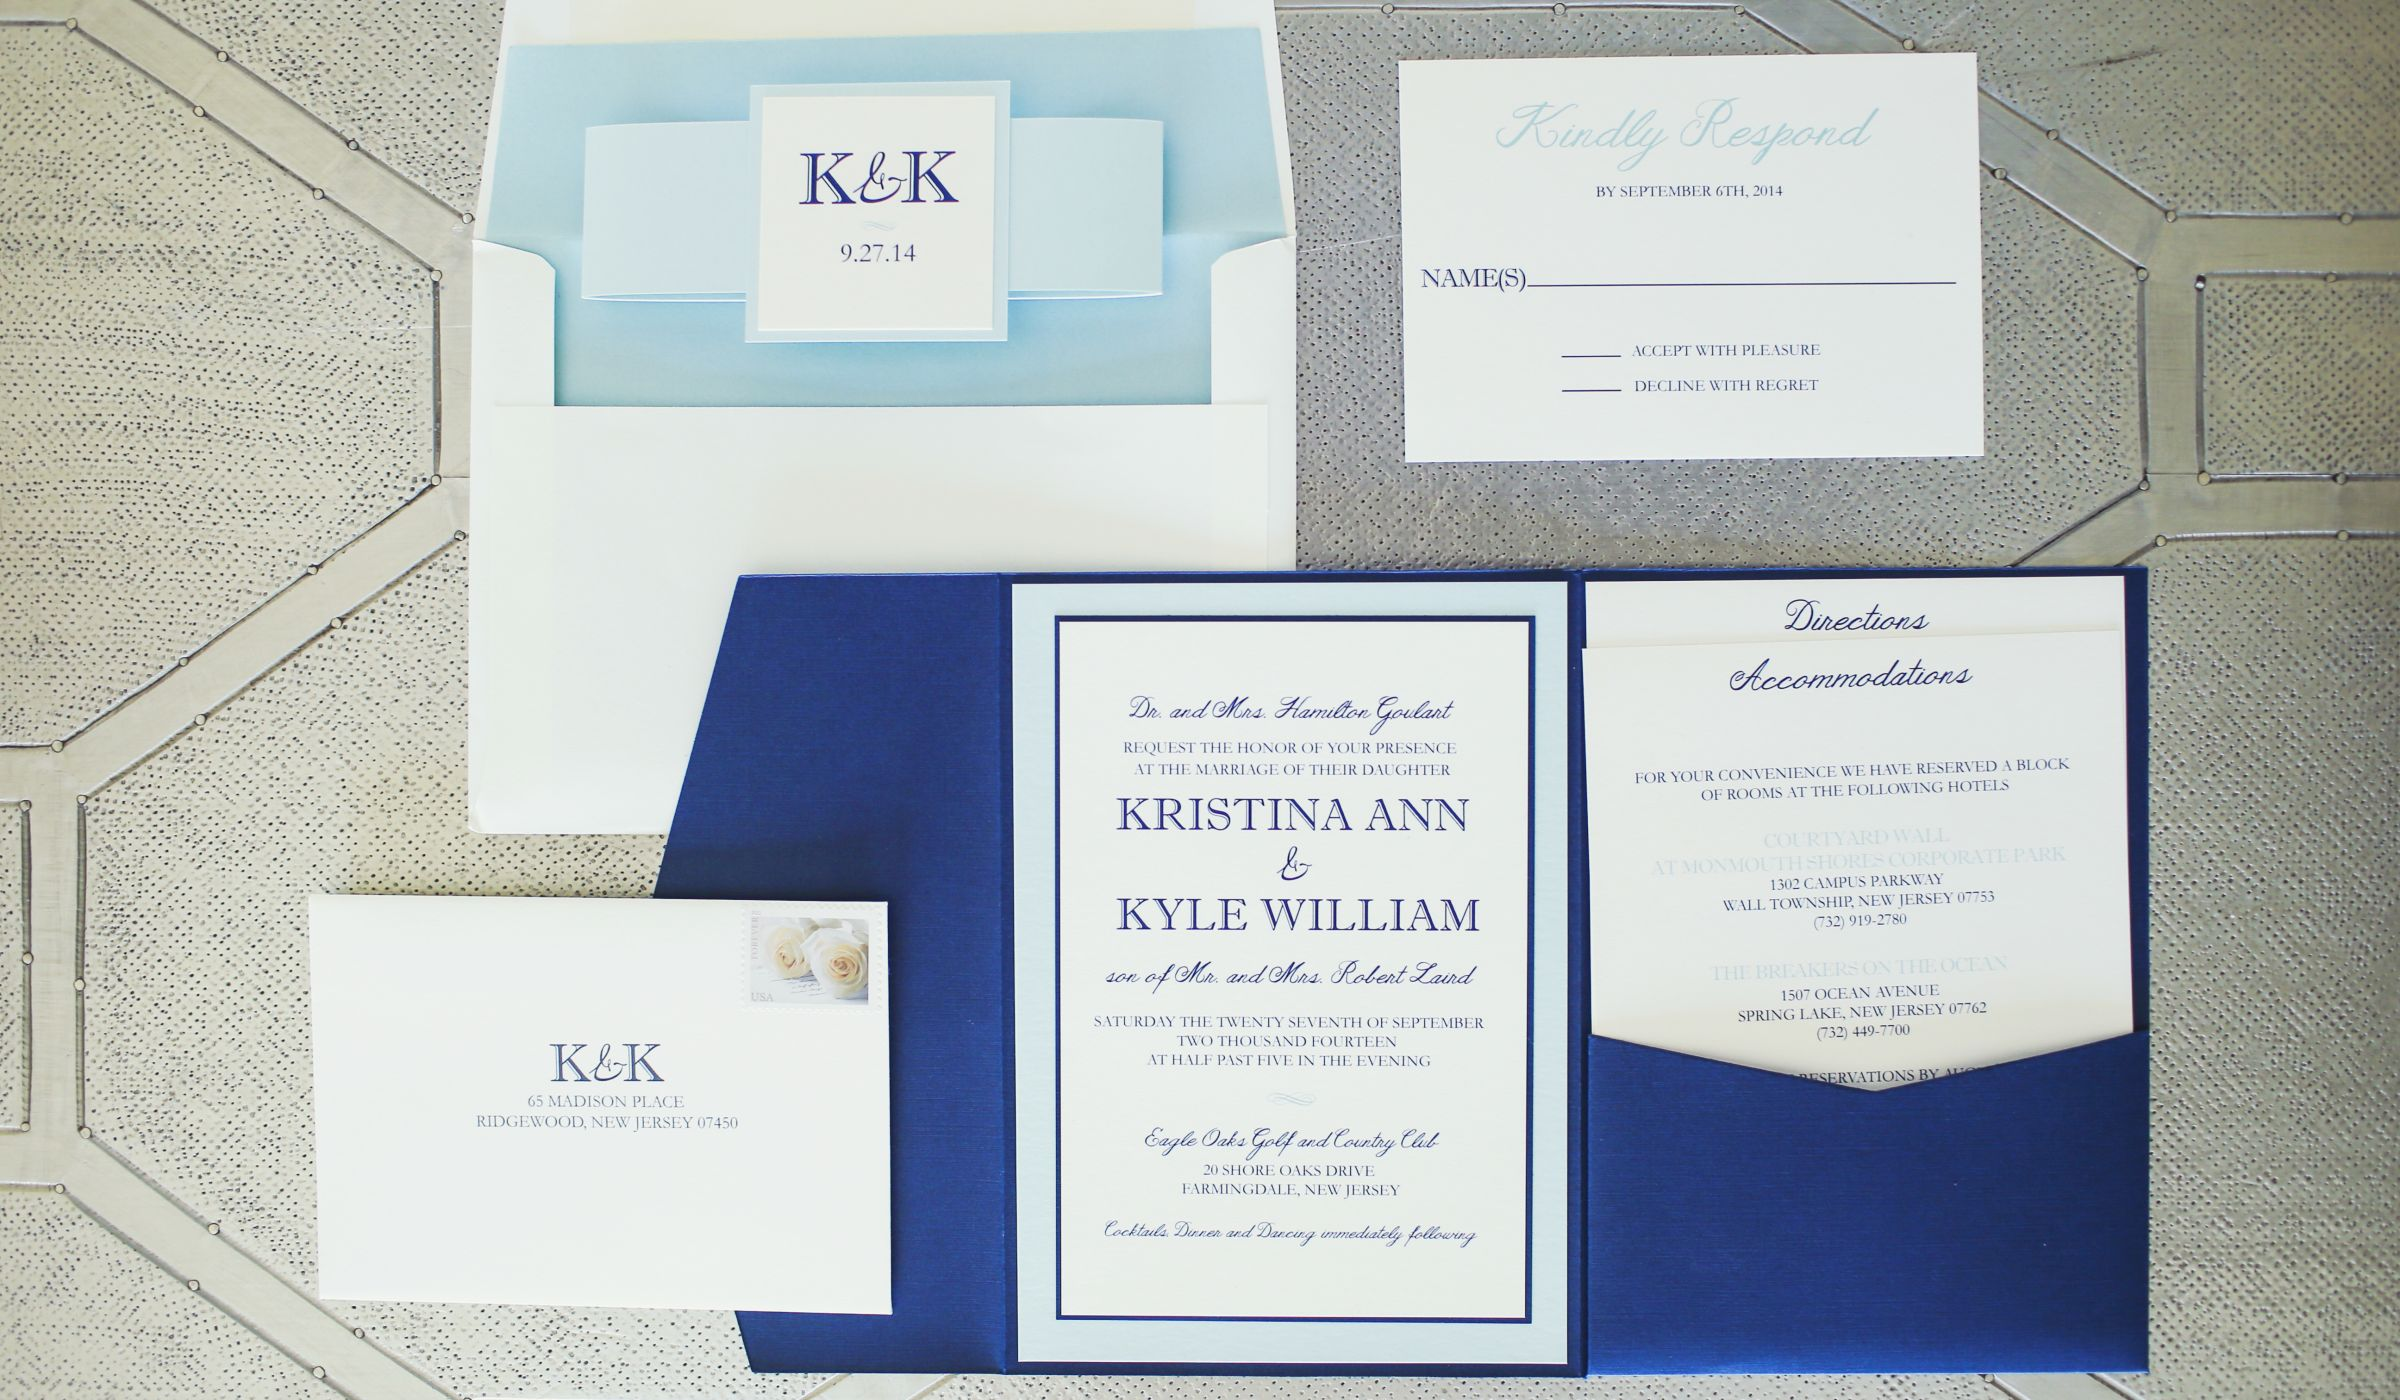 Inserts For Wedding Invitations: Which Wedding Invitation Inserts Do You Need?